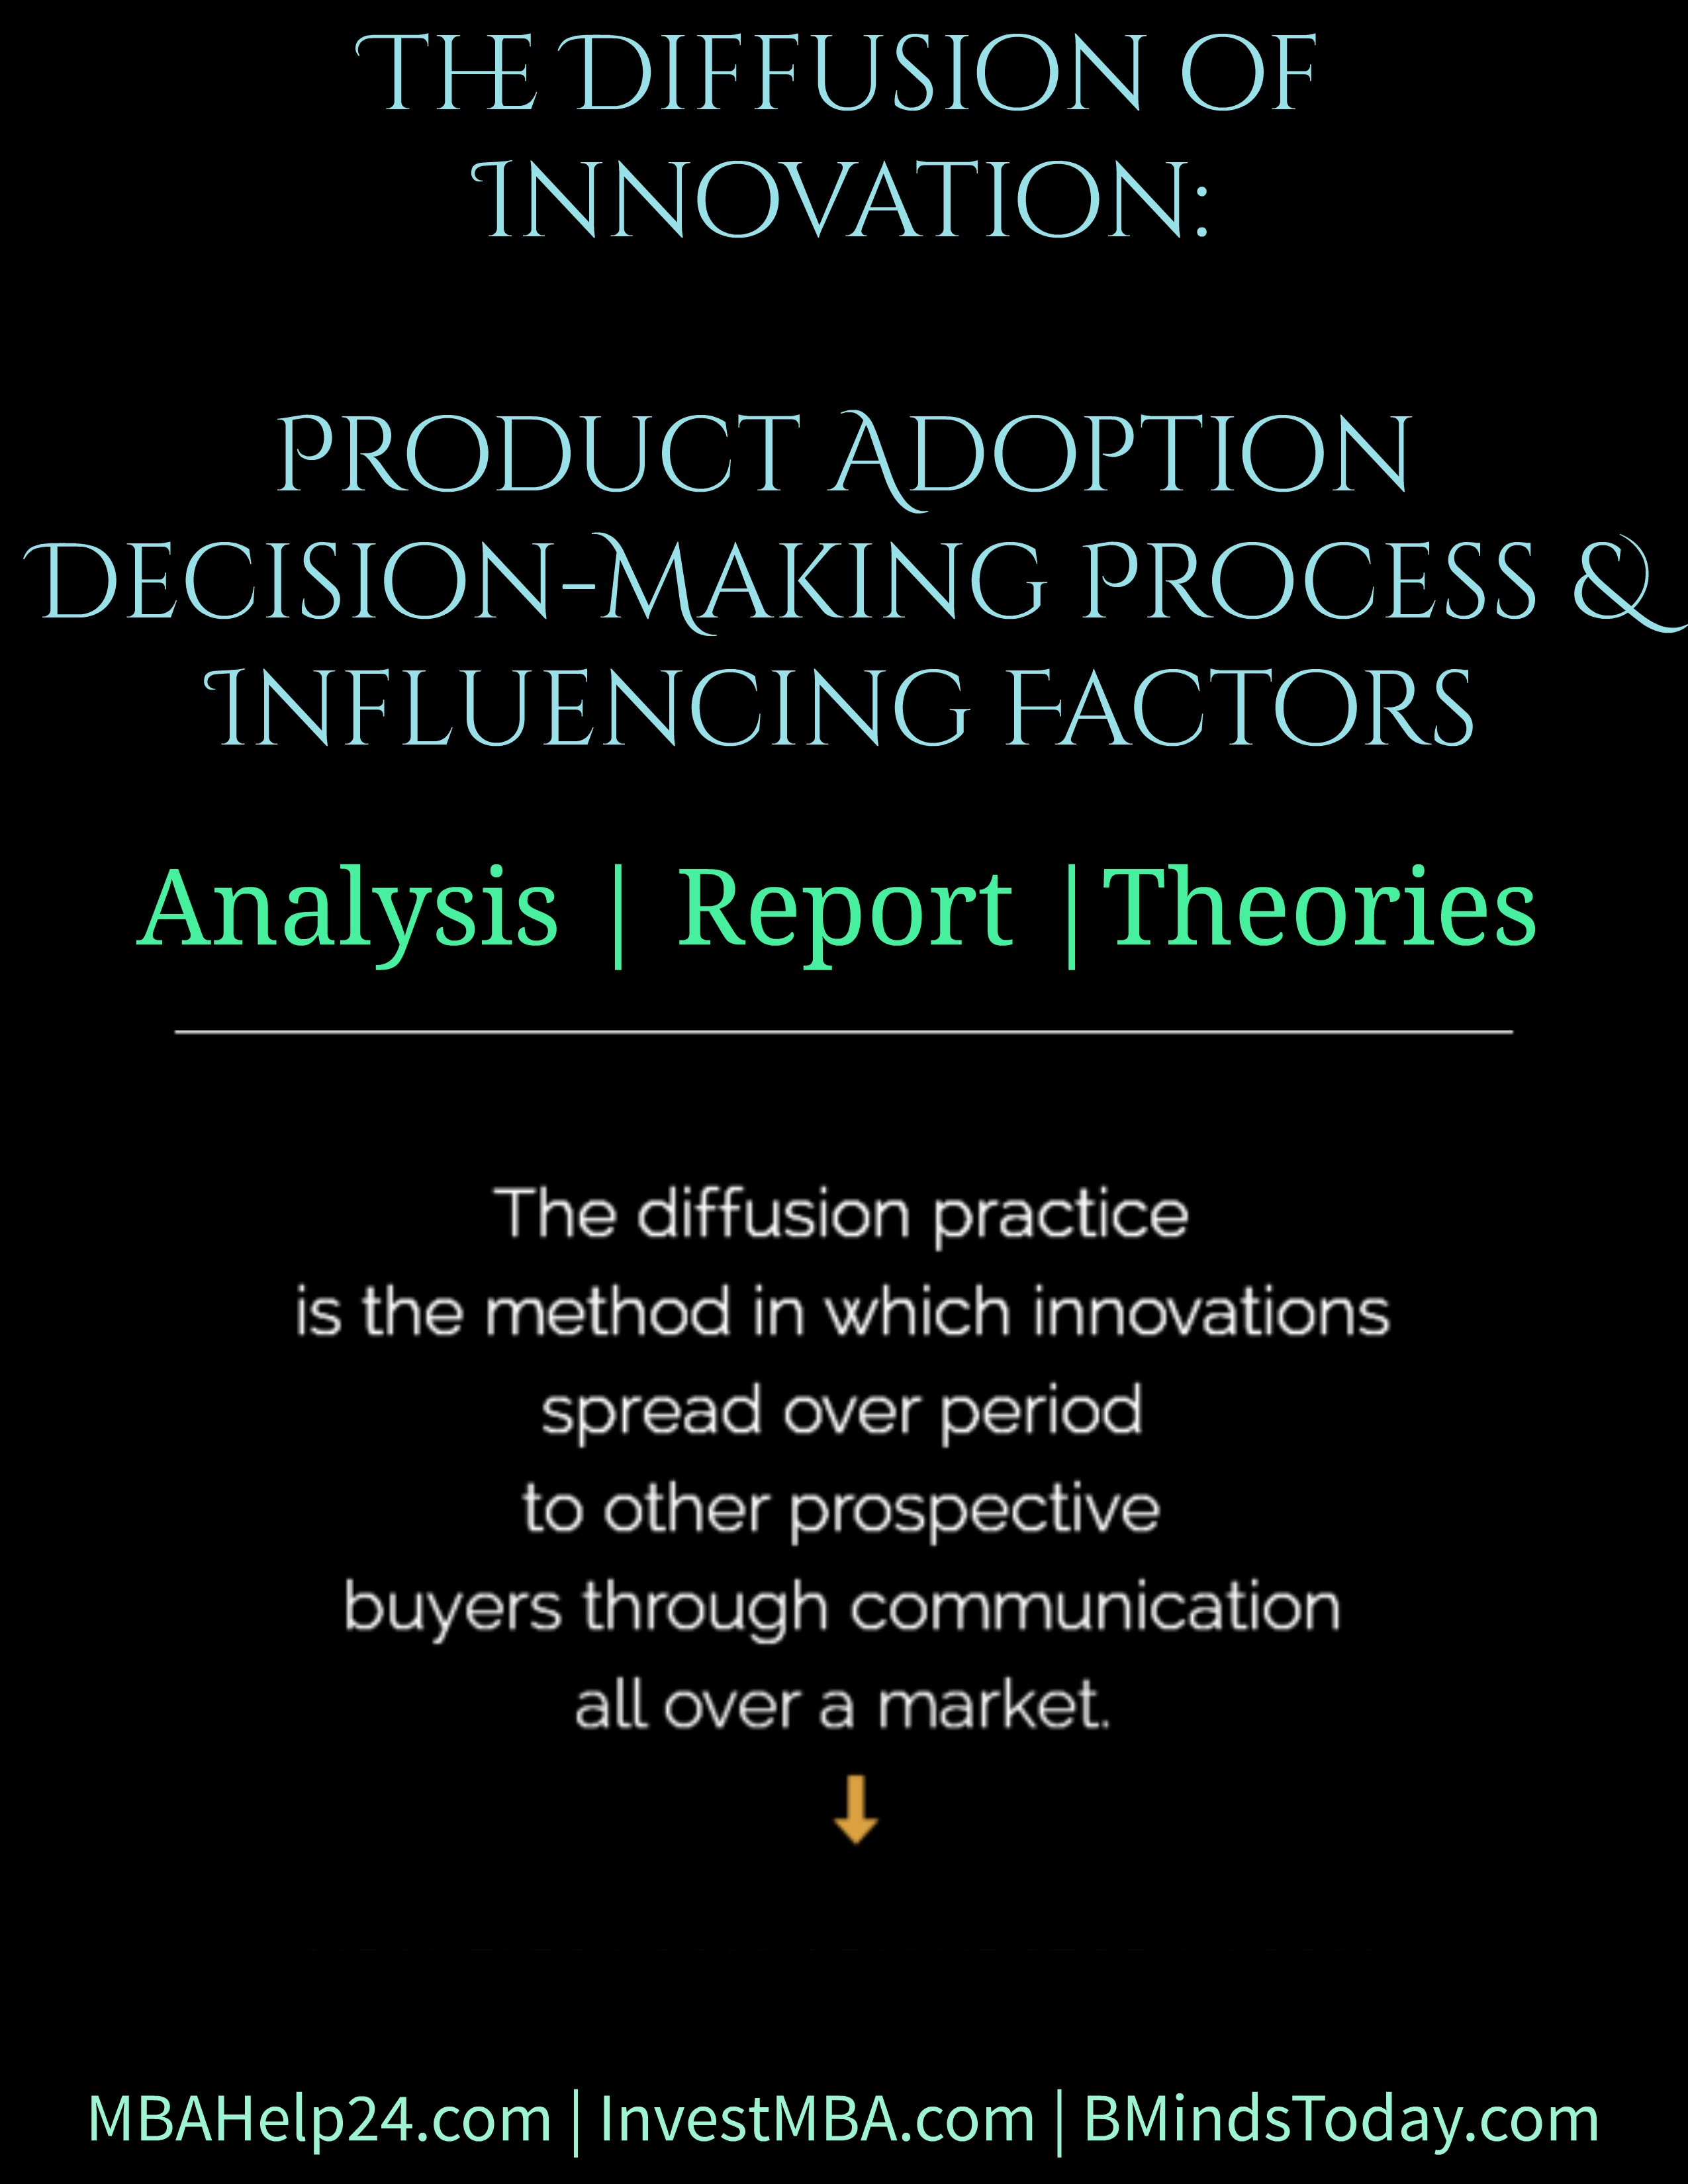 The Diffusion of Innovation: Product Adoption Decision-Making Process & Influencing Factors diffusion The Diffusion of Innovation | Product Adoption | Decision-Making & Influencing Factors The Diffusion of Innovation Product Adoption Decision Making Process and Influencing Factors